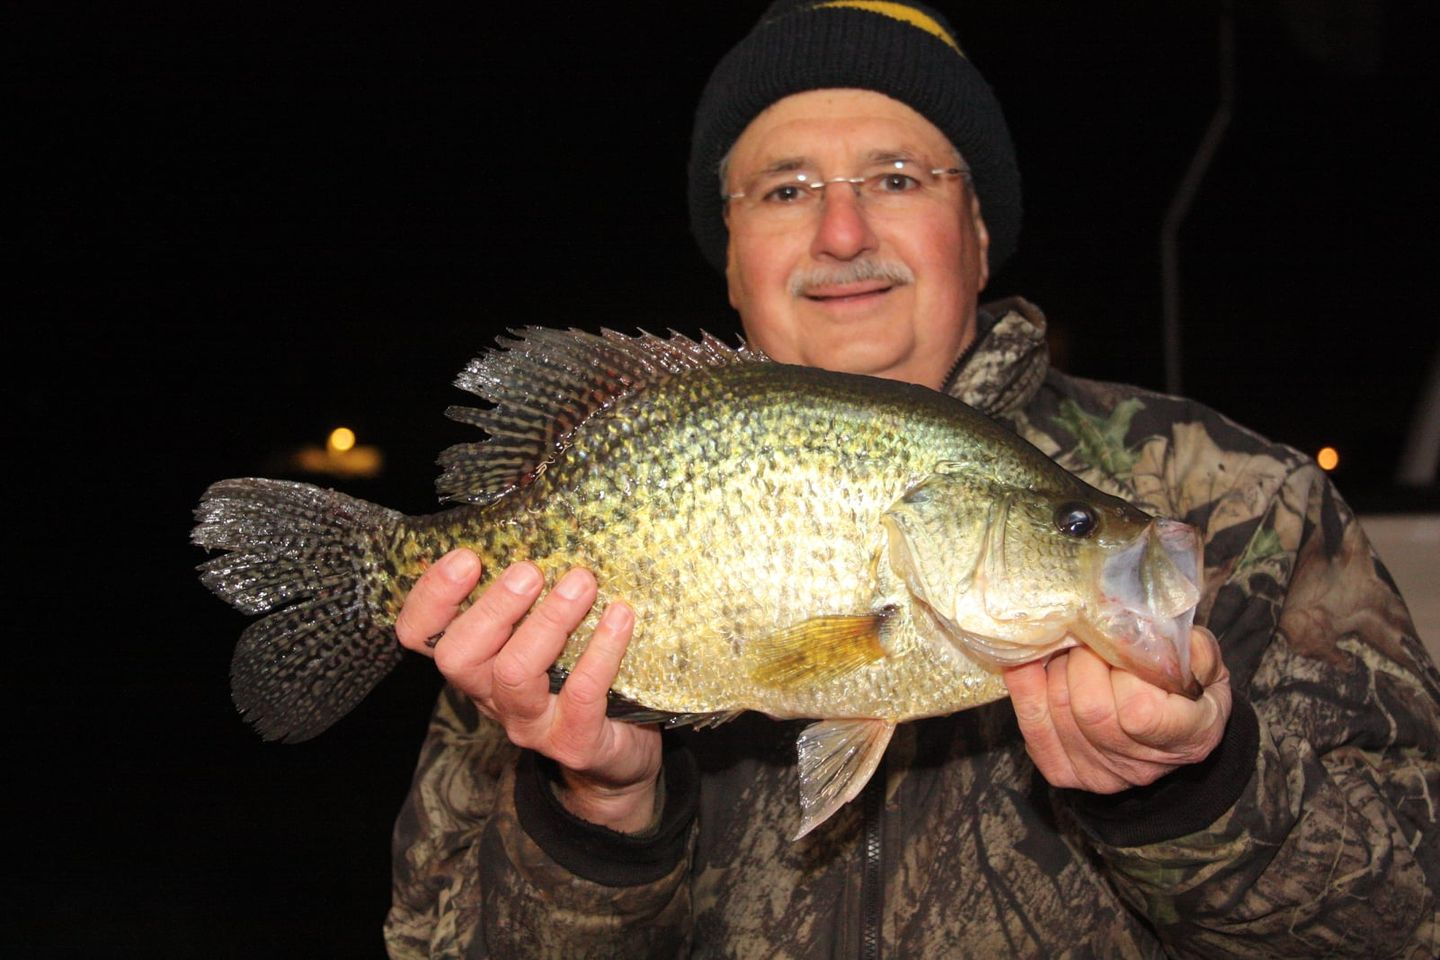 Huge crappie nearly breaks decades-old record